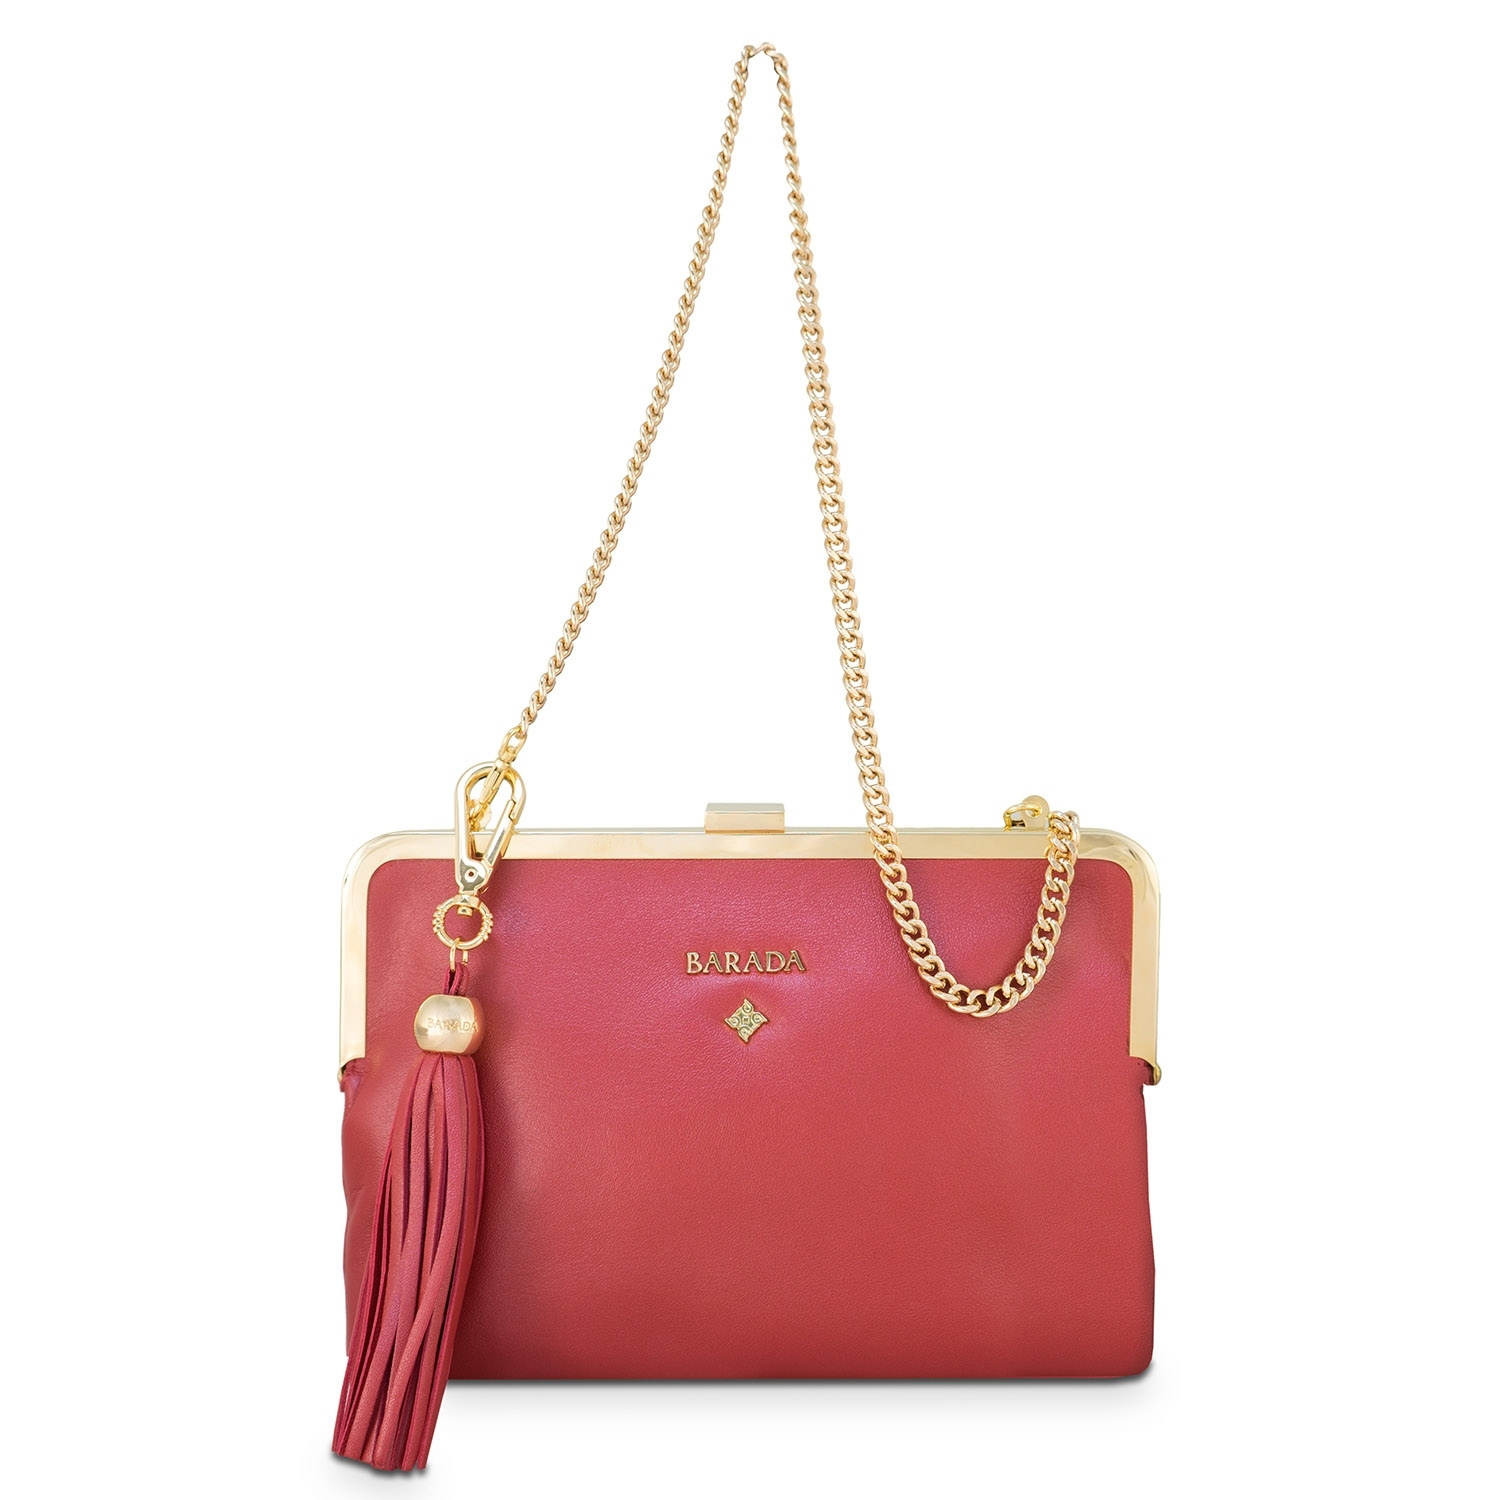 e855e46d8cf3 Clutch Handbag from our Dama Blanca collection in Nappa and Red color.  Loading zoom